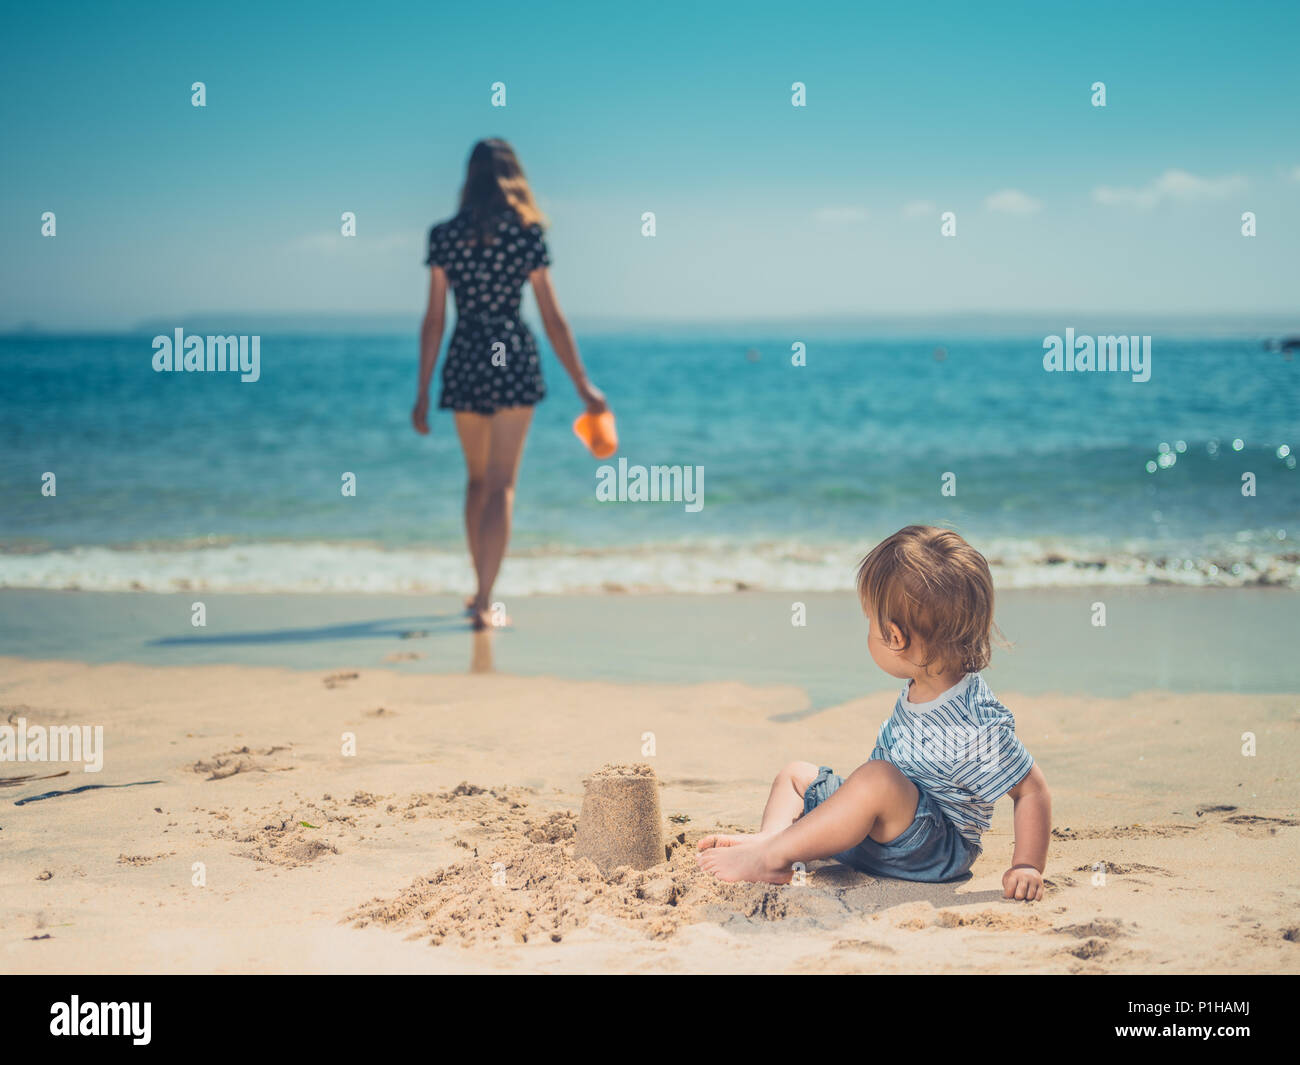 A young mother is playing with her son on the beach, building sand castles - Stock Image